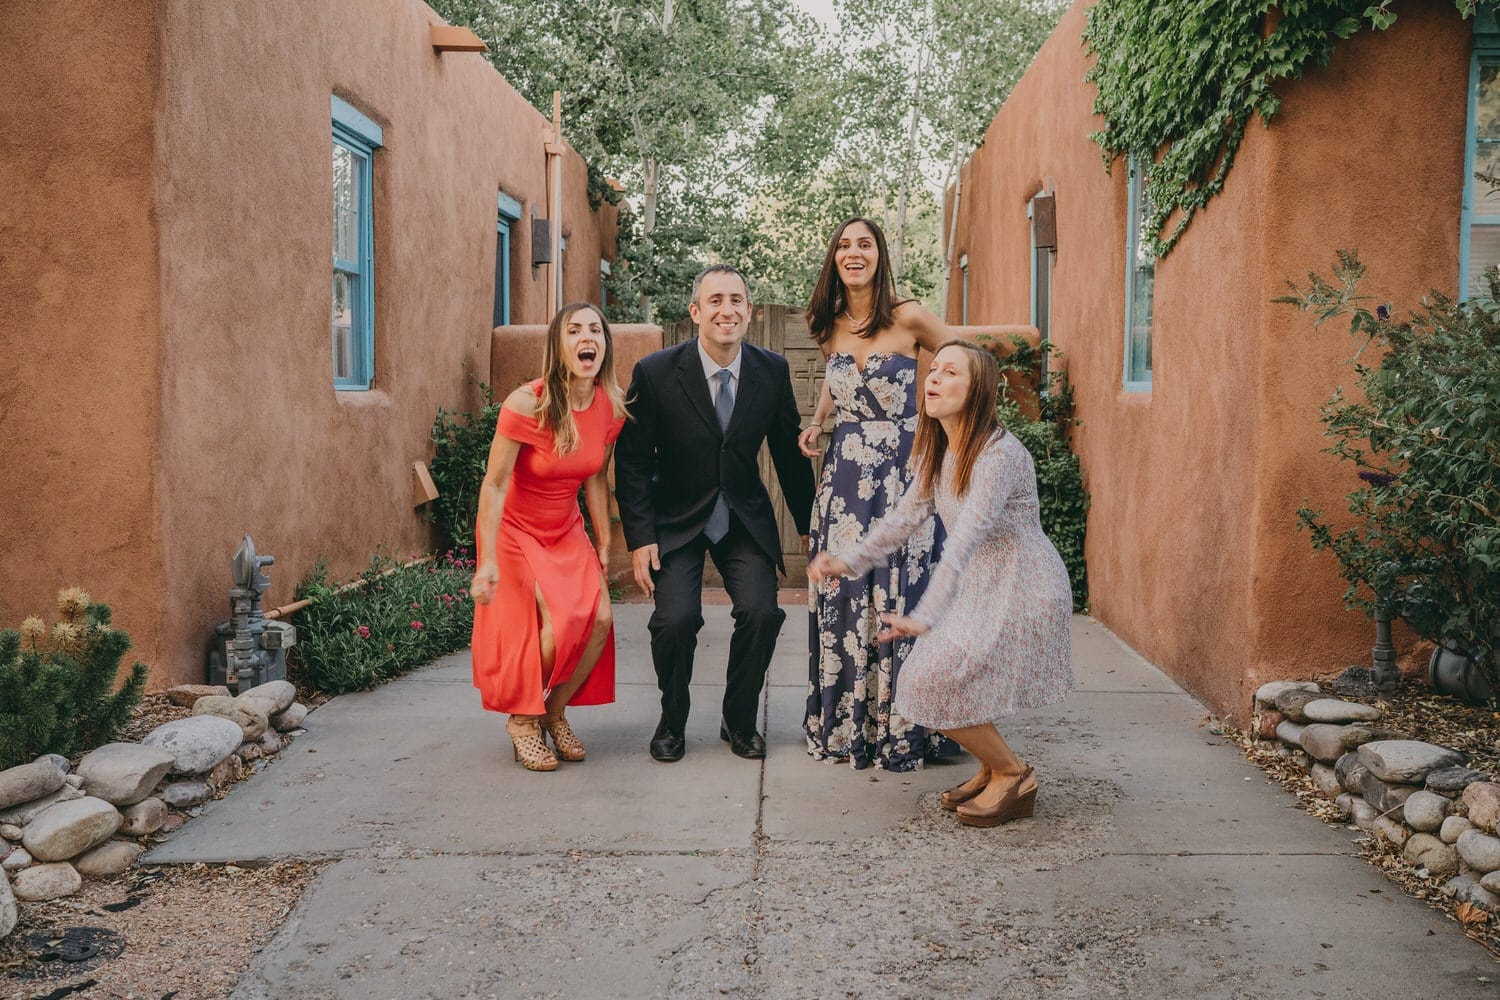 Elopement couple and their friends getting ready to jump